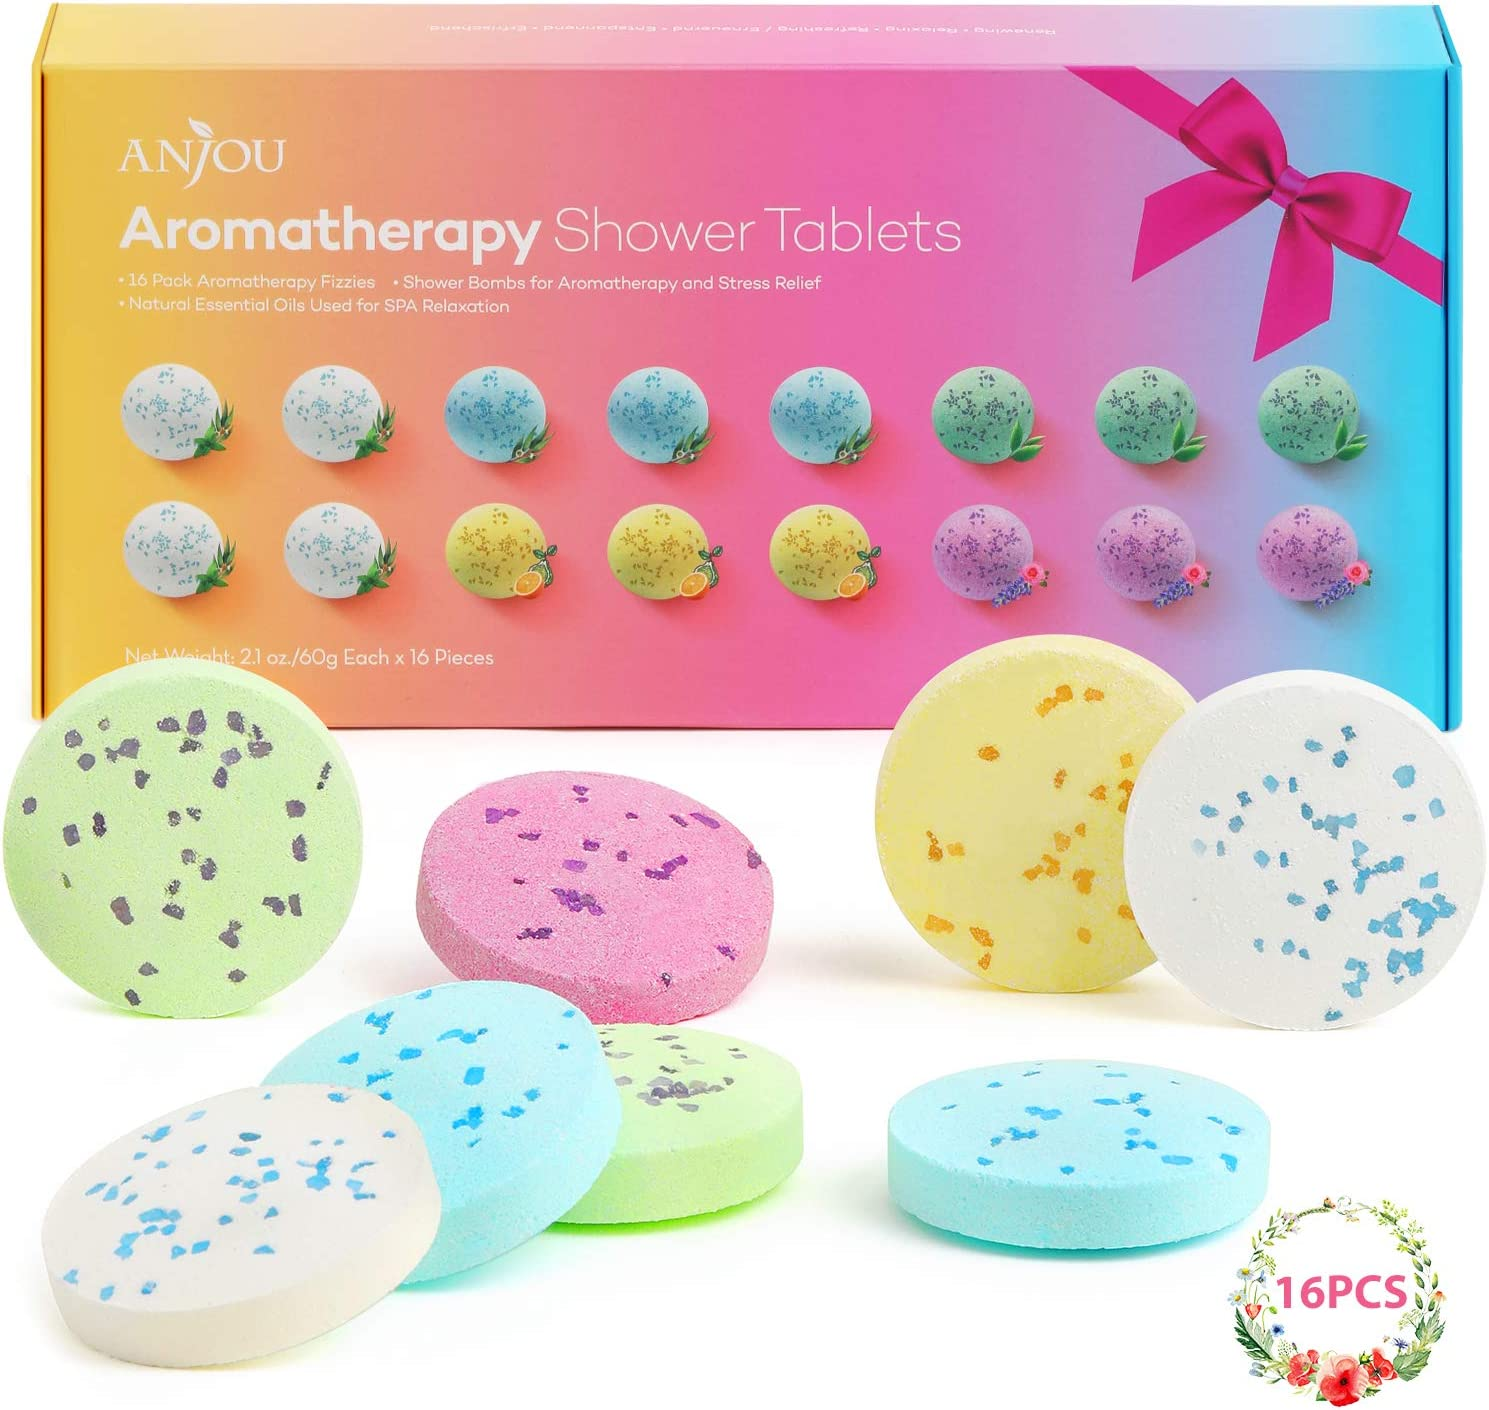 Shower Bomb Tablets Aromatherapy Bath Bombs with Pure Essential Oils 16-Piece Shower Fizzers Streamers Melts Vapor for Home Spa Gift Set: Health & Personal Care